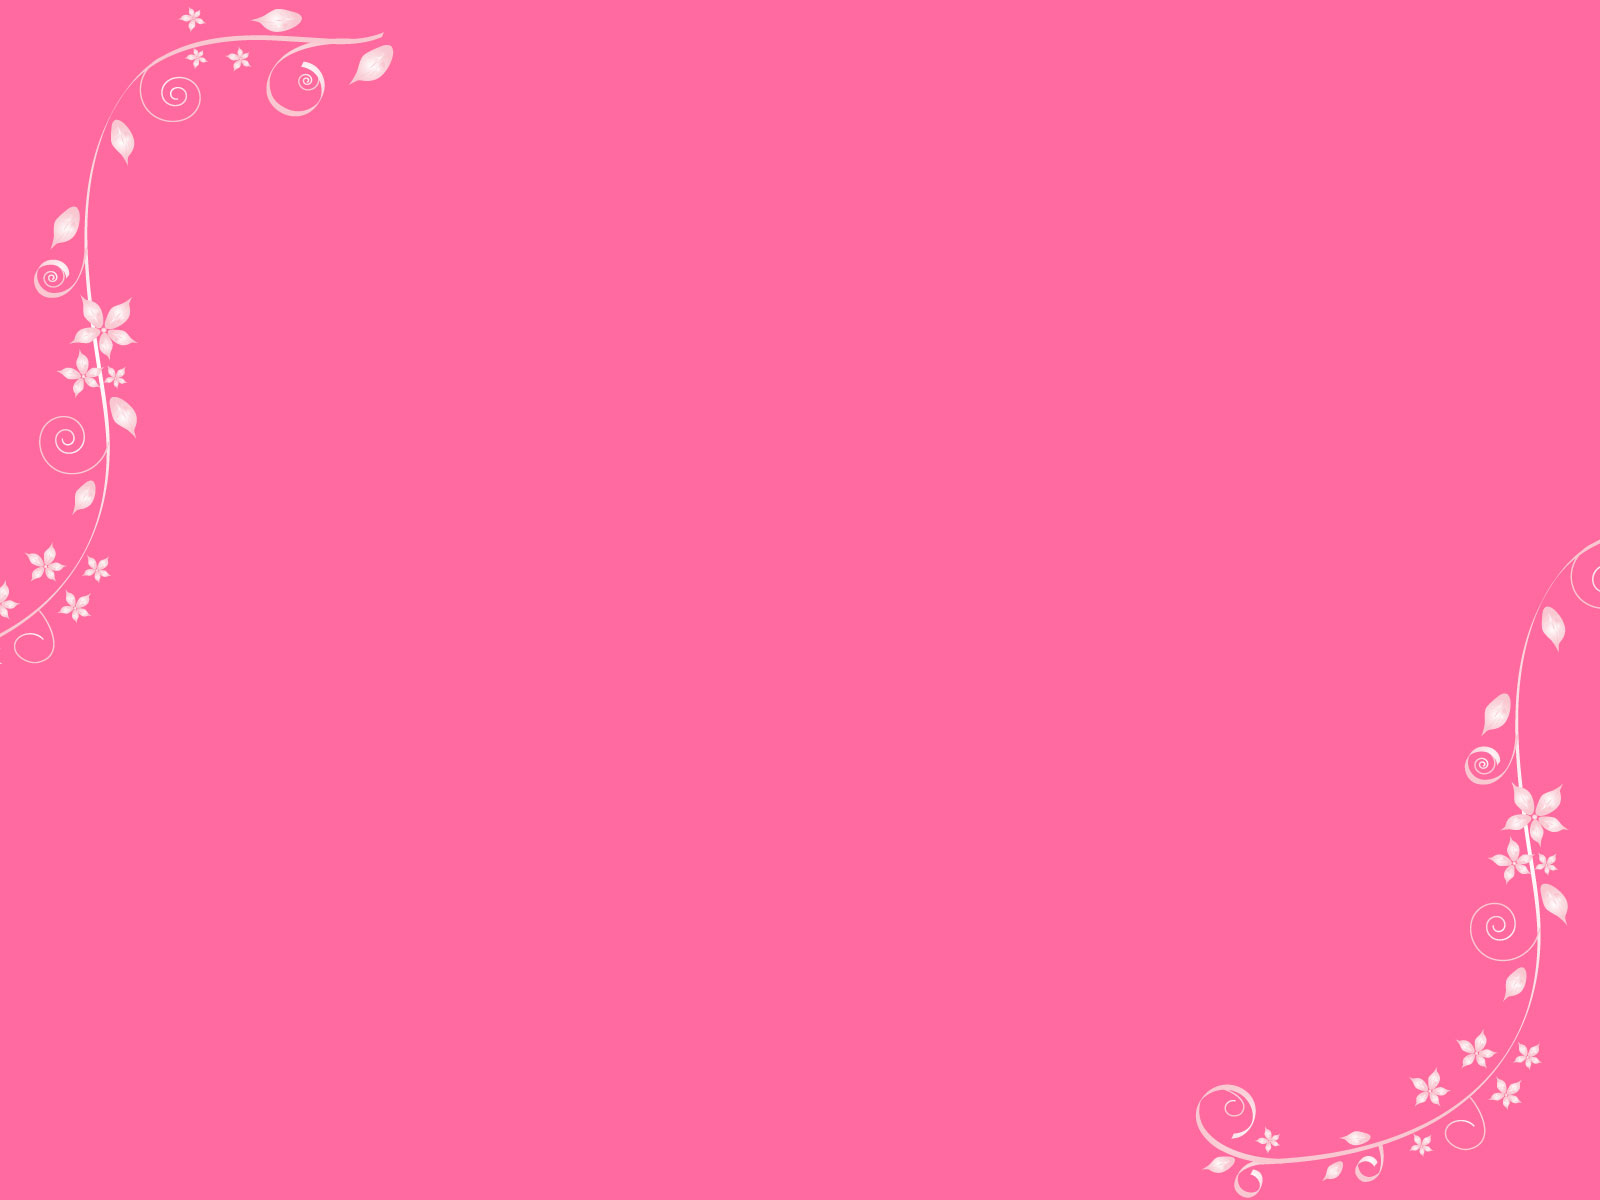 Pink background clipart #11